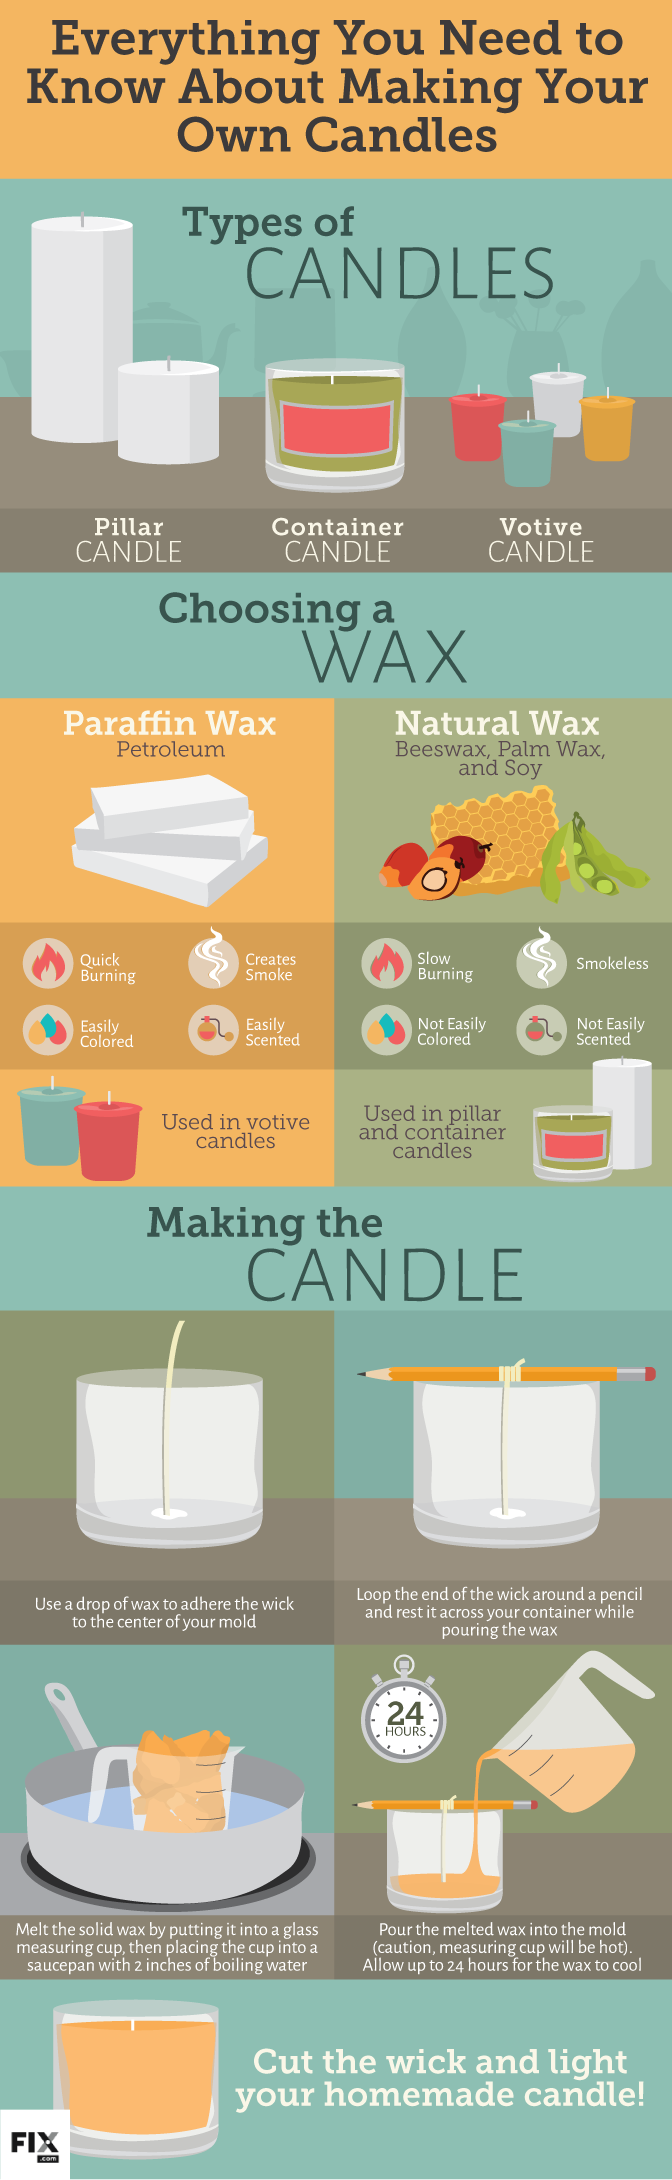 Making Your Own Candles Fix Com